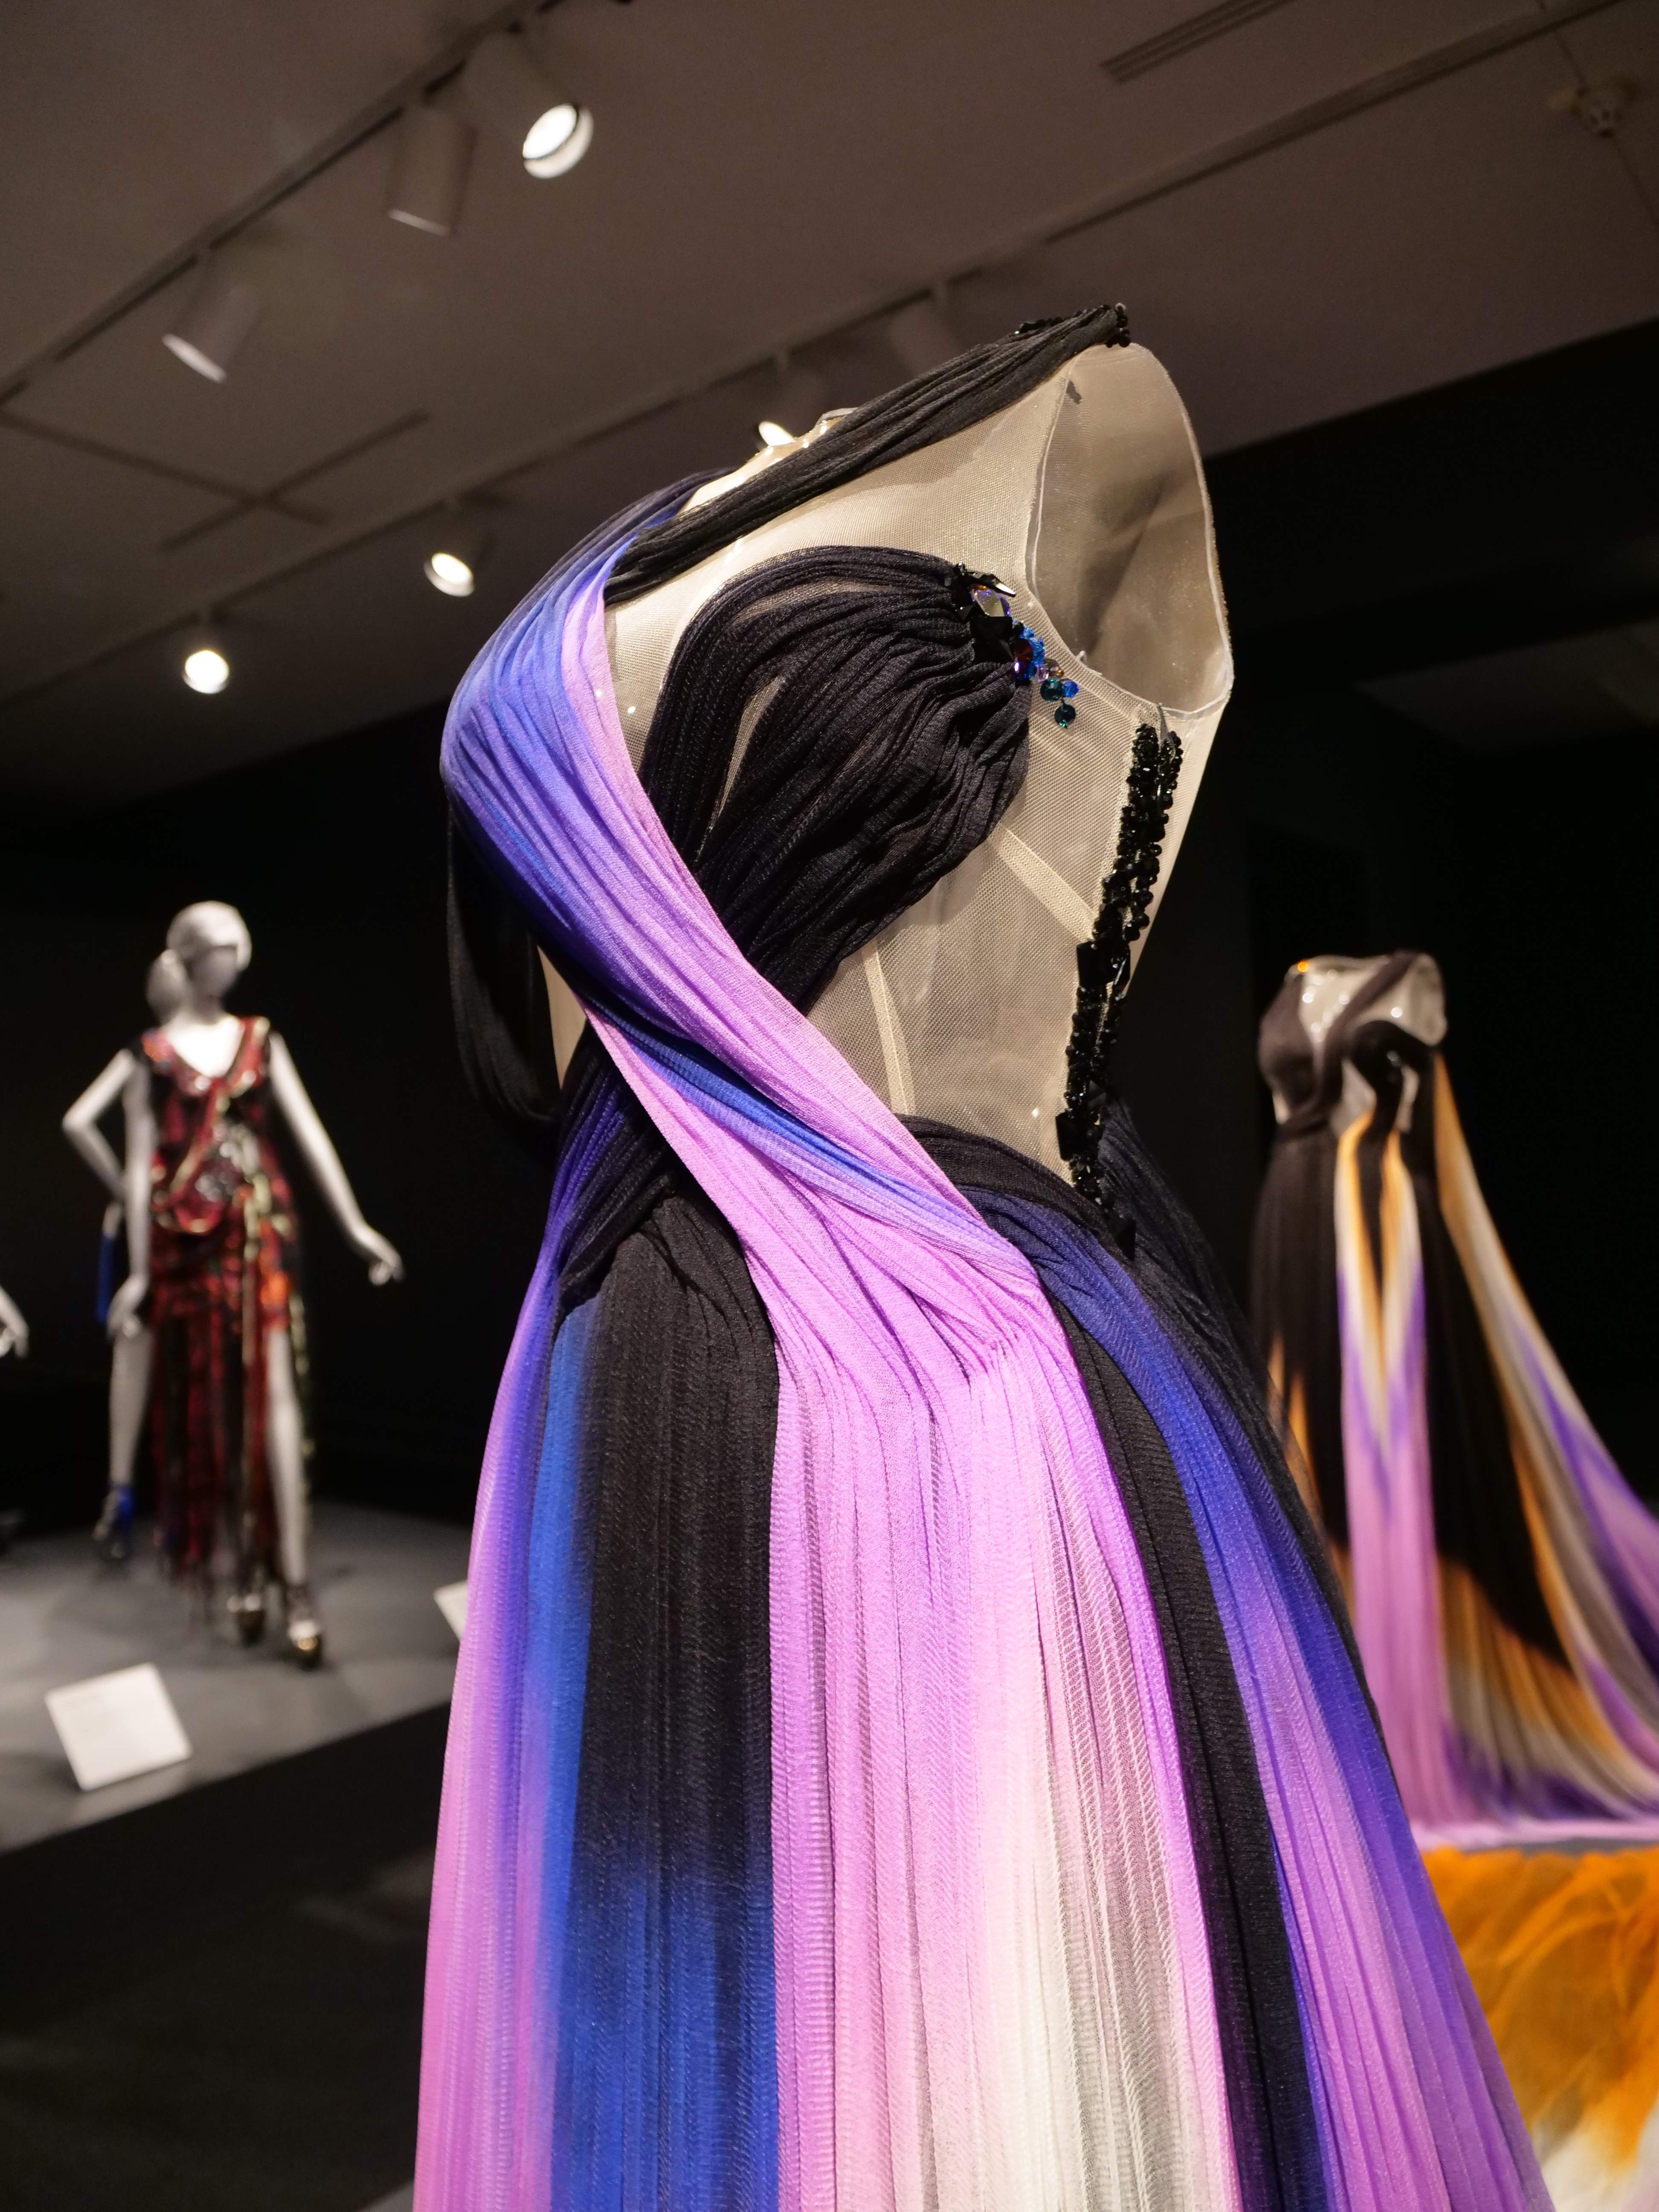 National Museum of Women in the Arts: Rodarte Exhibit with purple black chifon dresses and rhinestone details